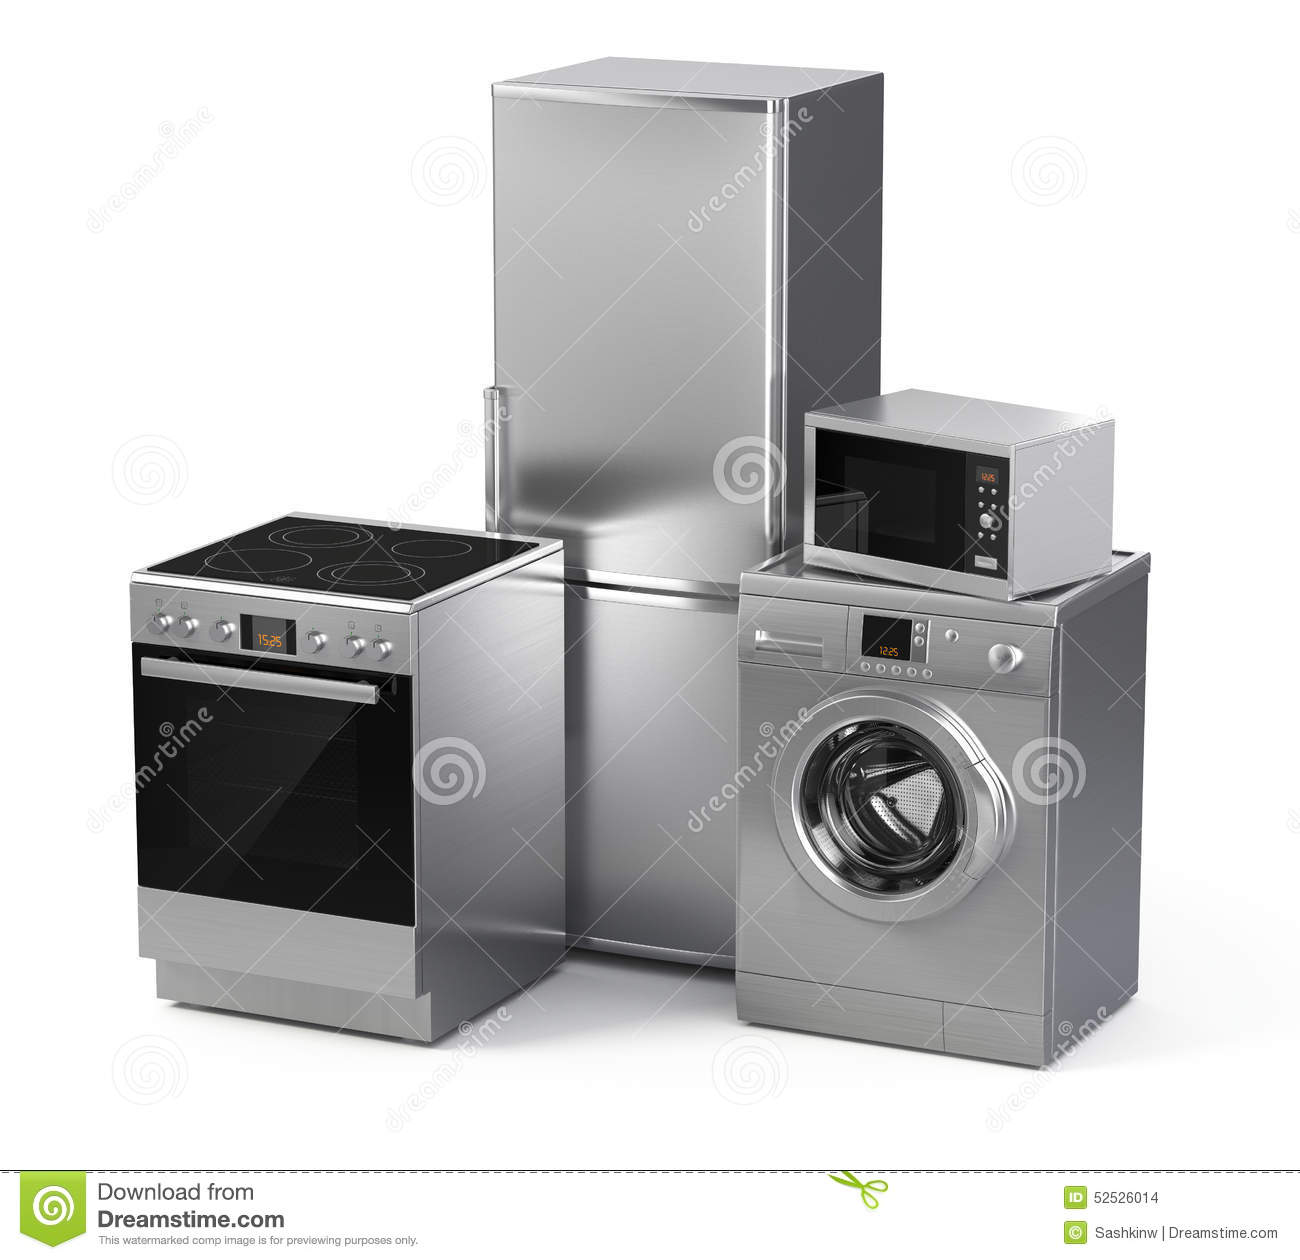 home appliances refrigerator washing machine electric stove and microwave stock illustration. Black Bedroom Furniture Sets. Home Design Ideas